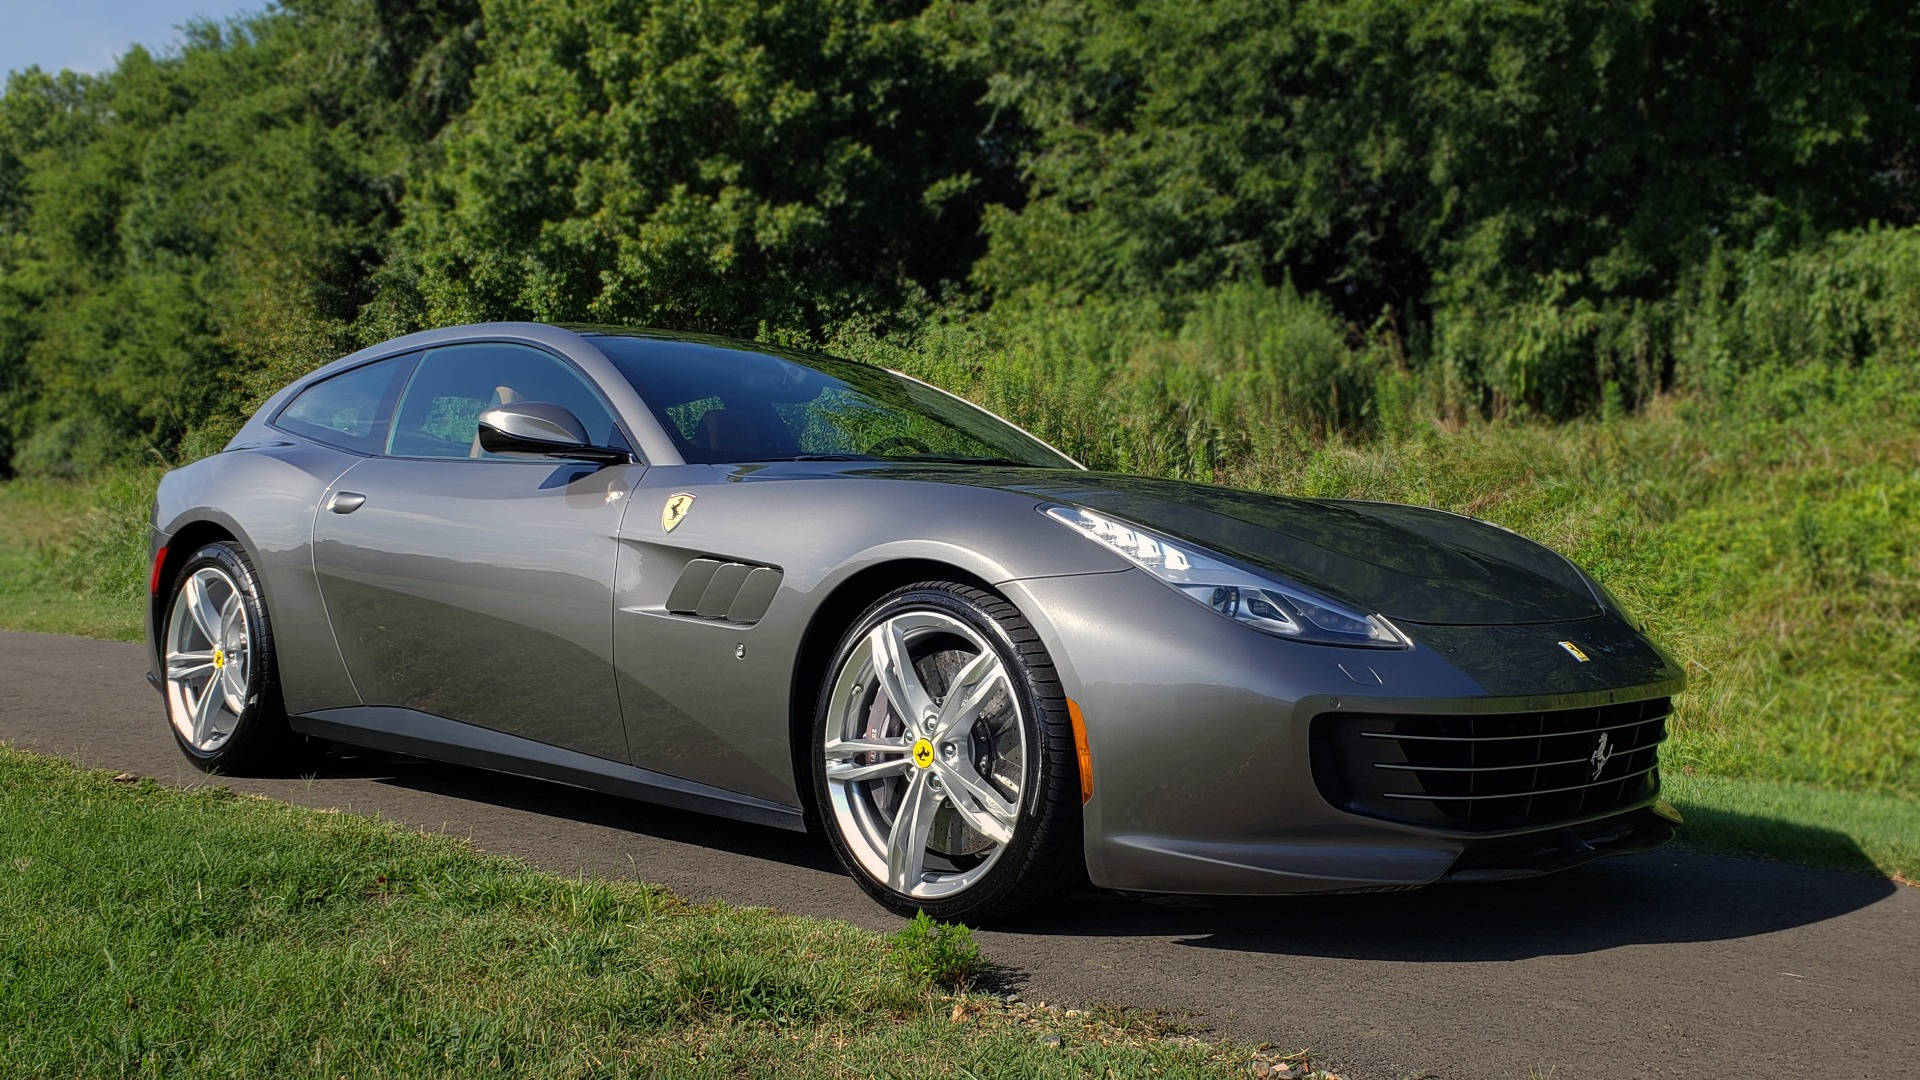 Used 2017 Ferrari GTC4 LUSSO AWD / PANO-ROOF / APPLE CAR PLAY / SUSP LIFT / JBL SOUND for sale $188,999 at Formula Imports in Charlotte NC 28227 10